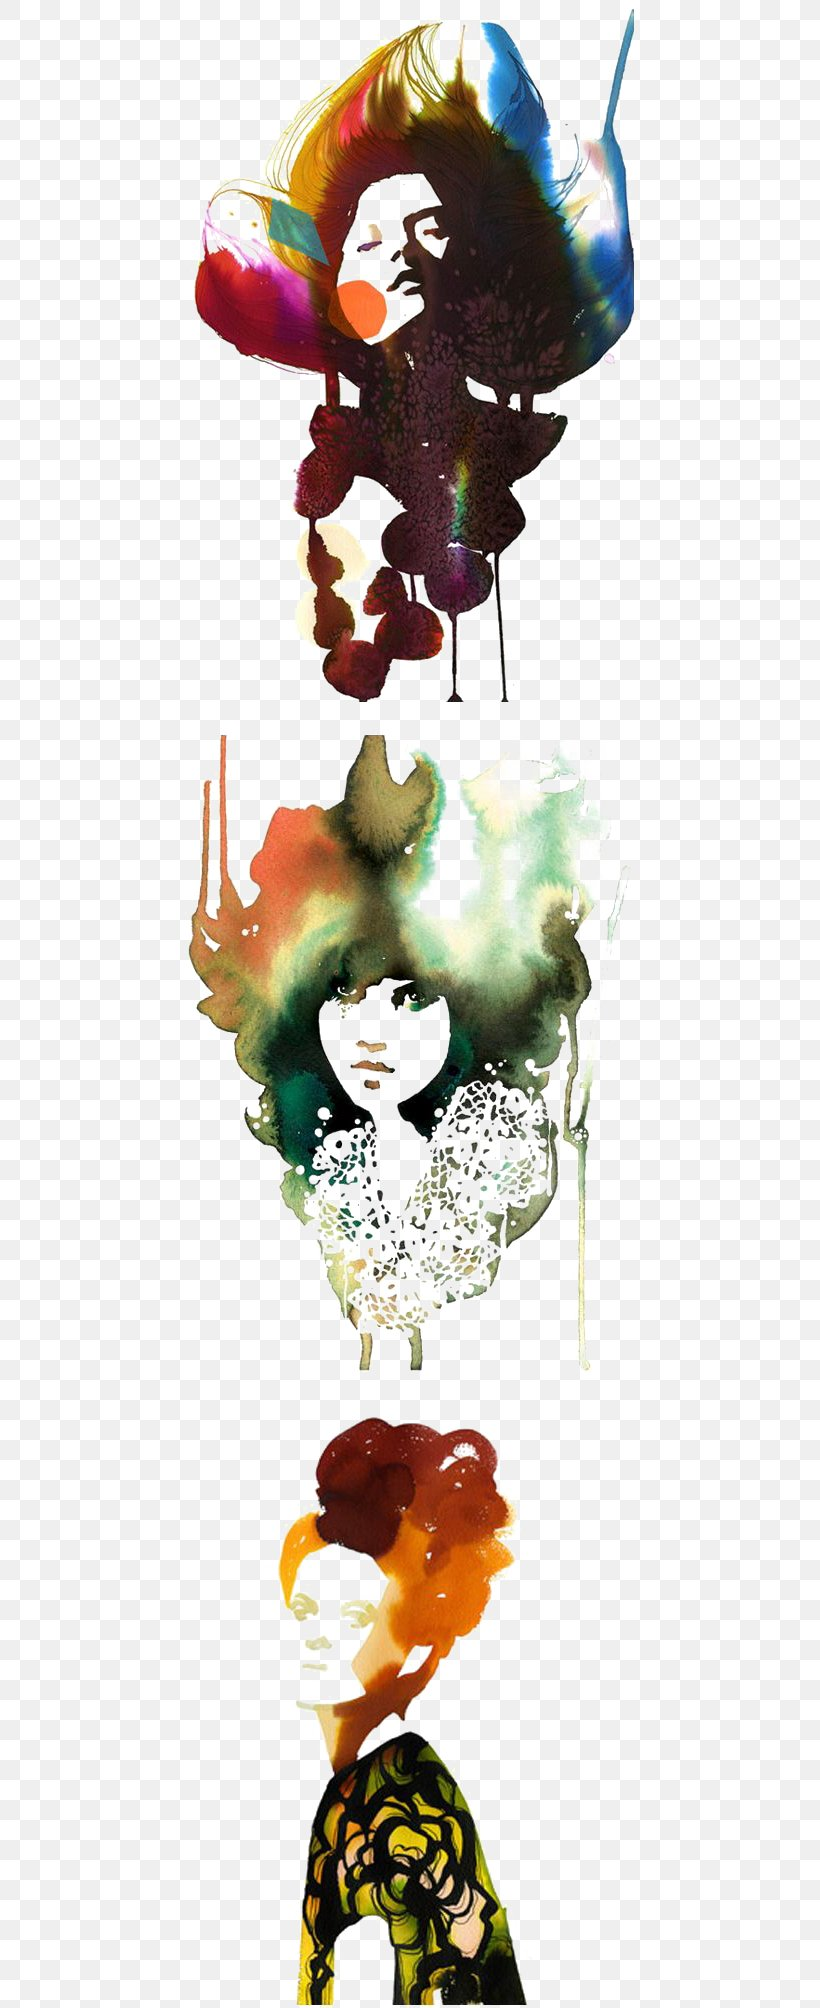 Watercolor Painting Drawing Fashion Illustration Art Illustration, PNG, 450x2008px, Watercolor Painting, Art, Artist, Color, Drawing Download Free